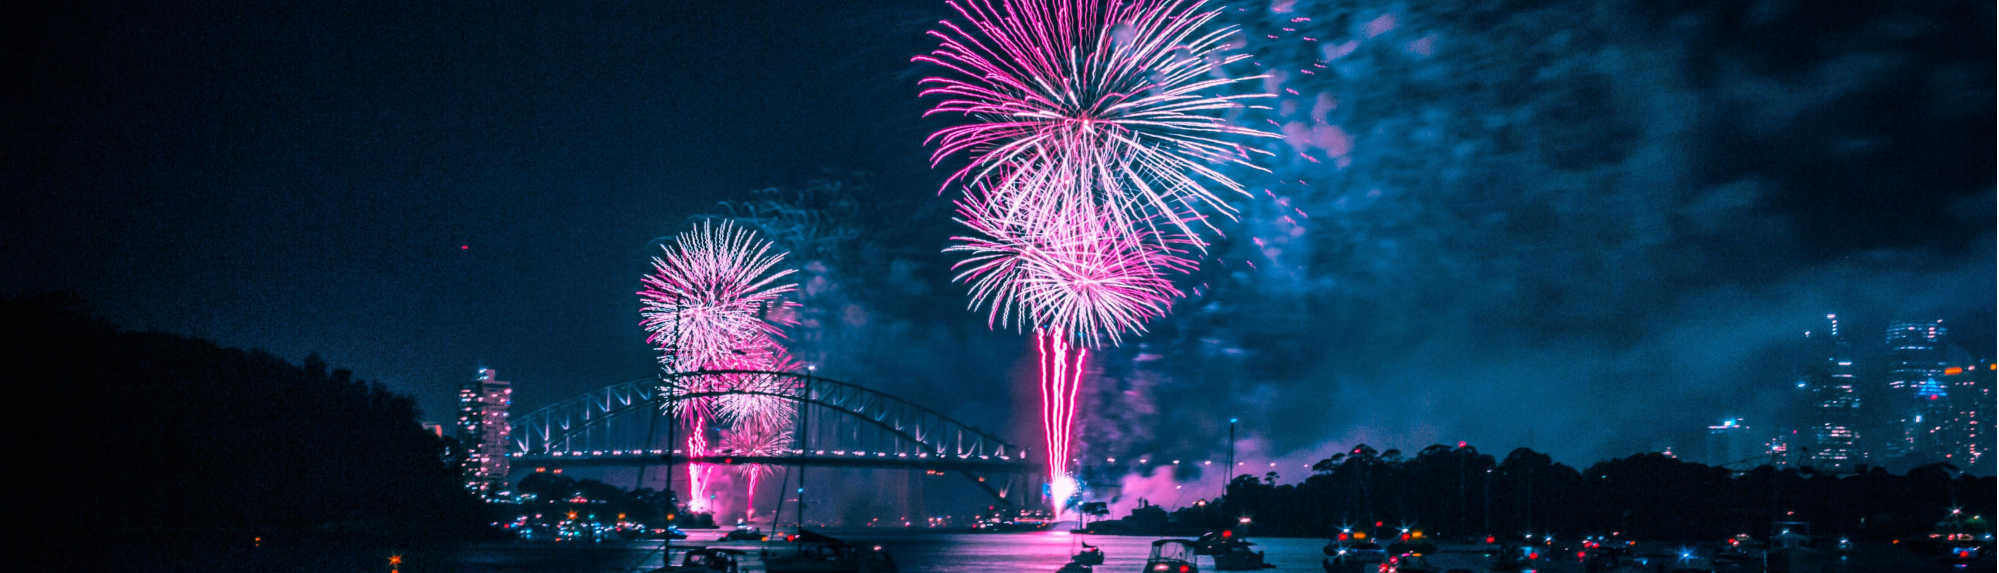 What to do on new year's eve in Australia